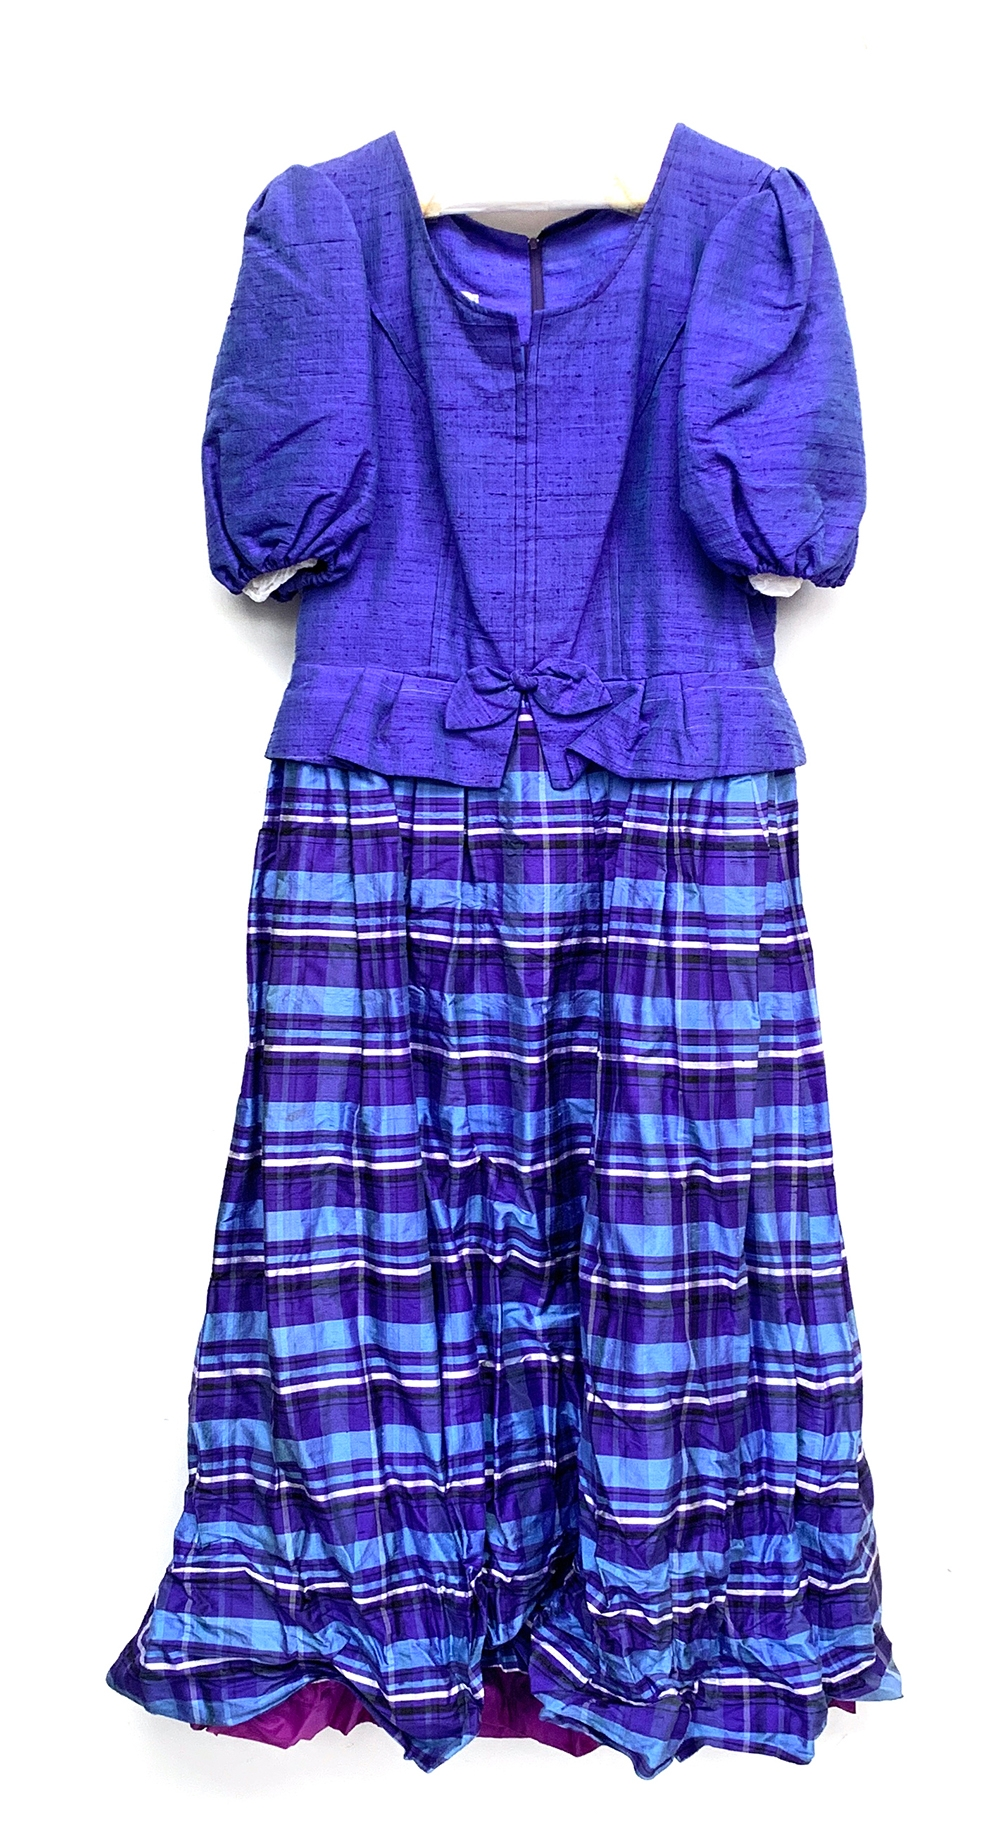 A Ghost jacket and dress, size medium, the dress medium the jacket large; together with a Donald - Image 3 of 3